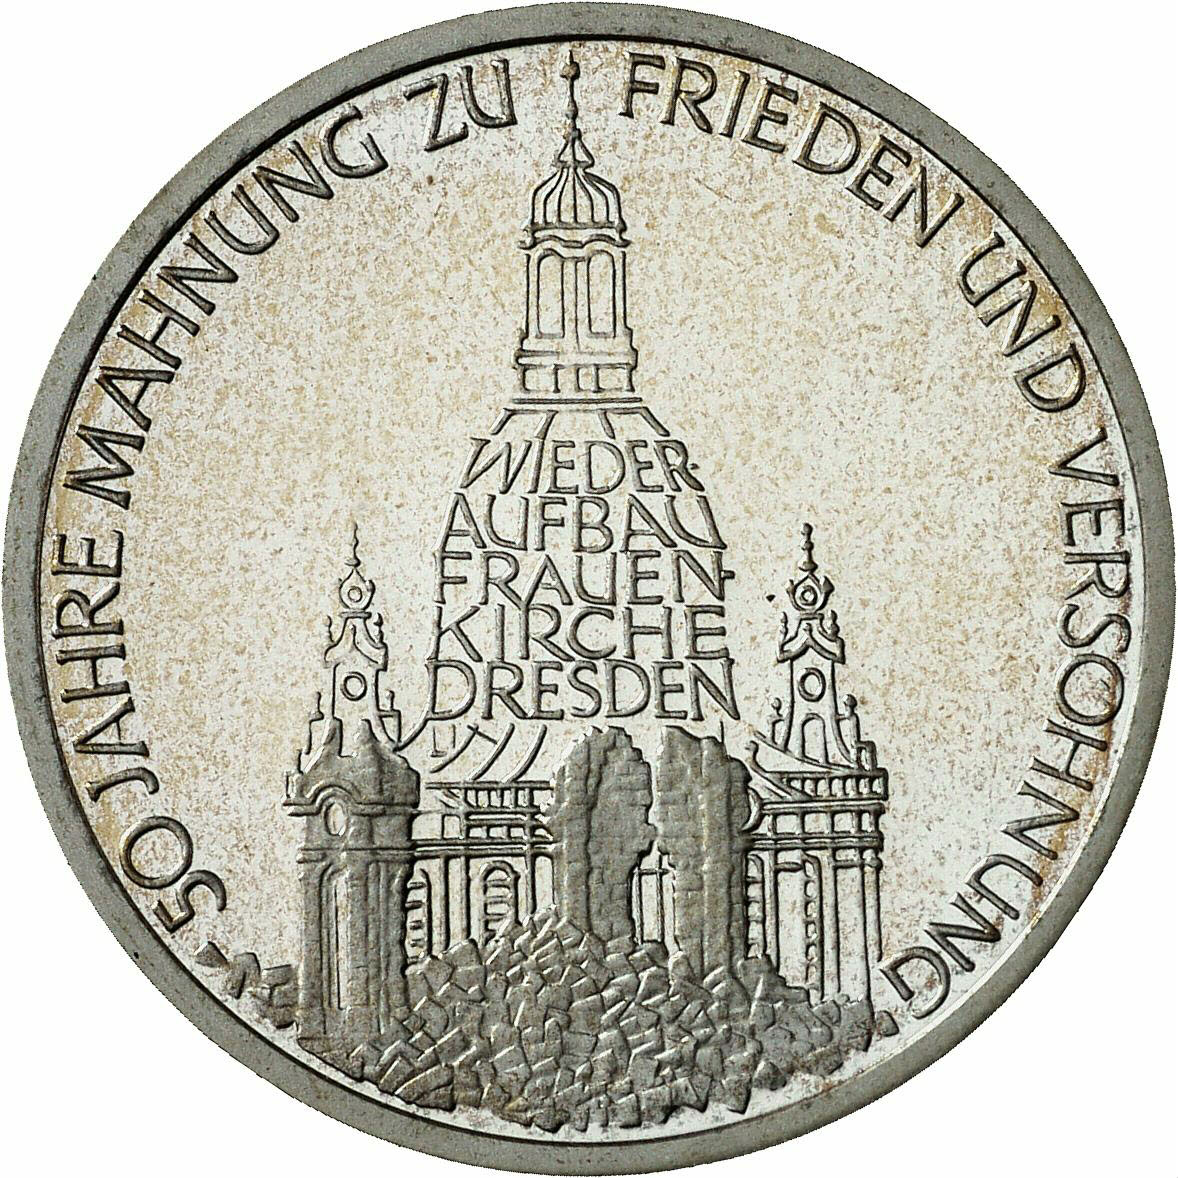 DE 10 Deutsche Mark 1995 J